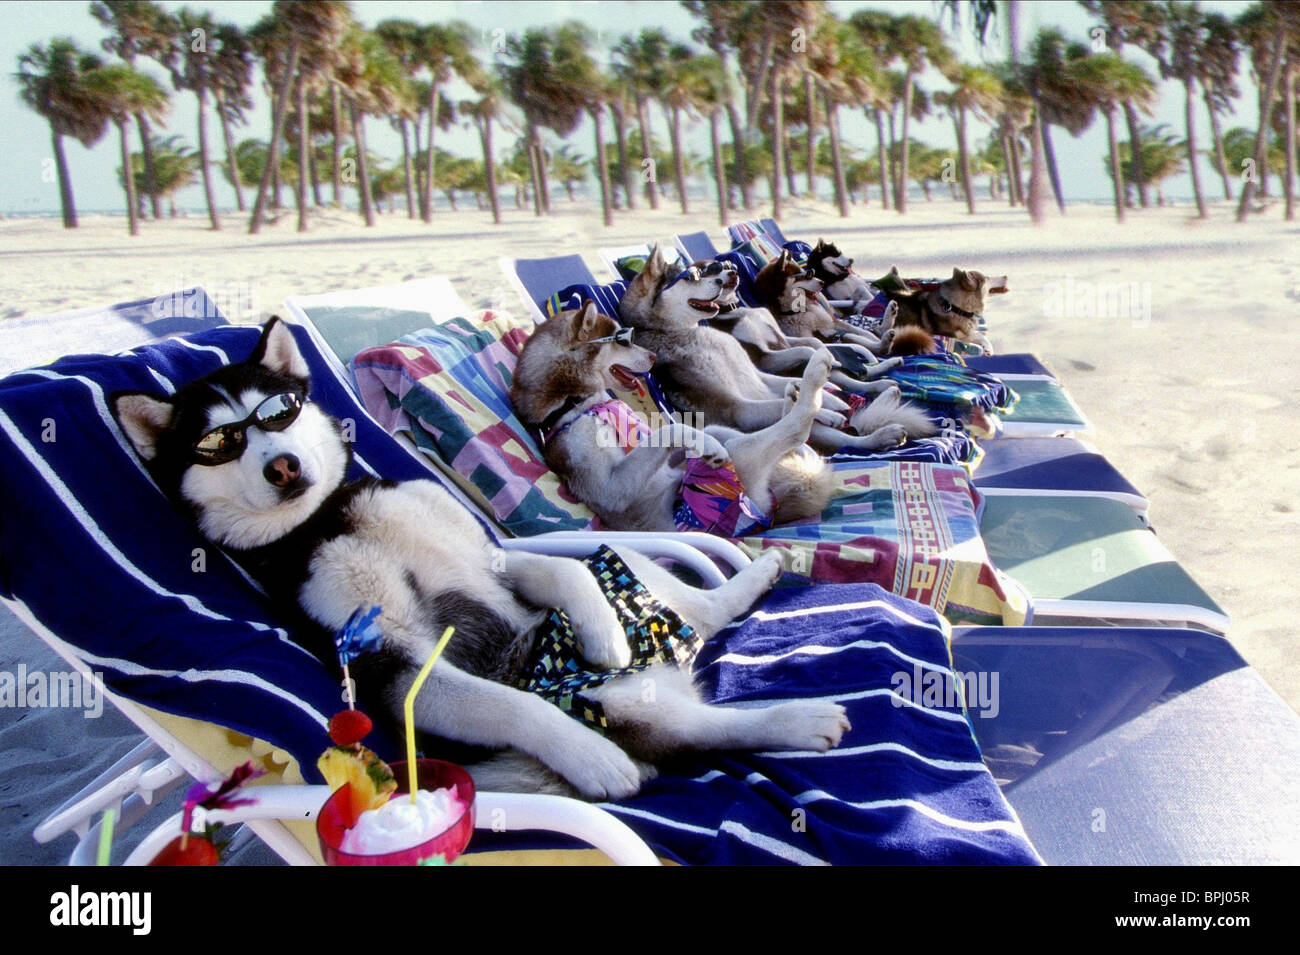 DOGS LAY ON SUN LOUNGERS SNOW DOGS; (2002) - Stock Image